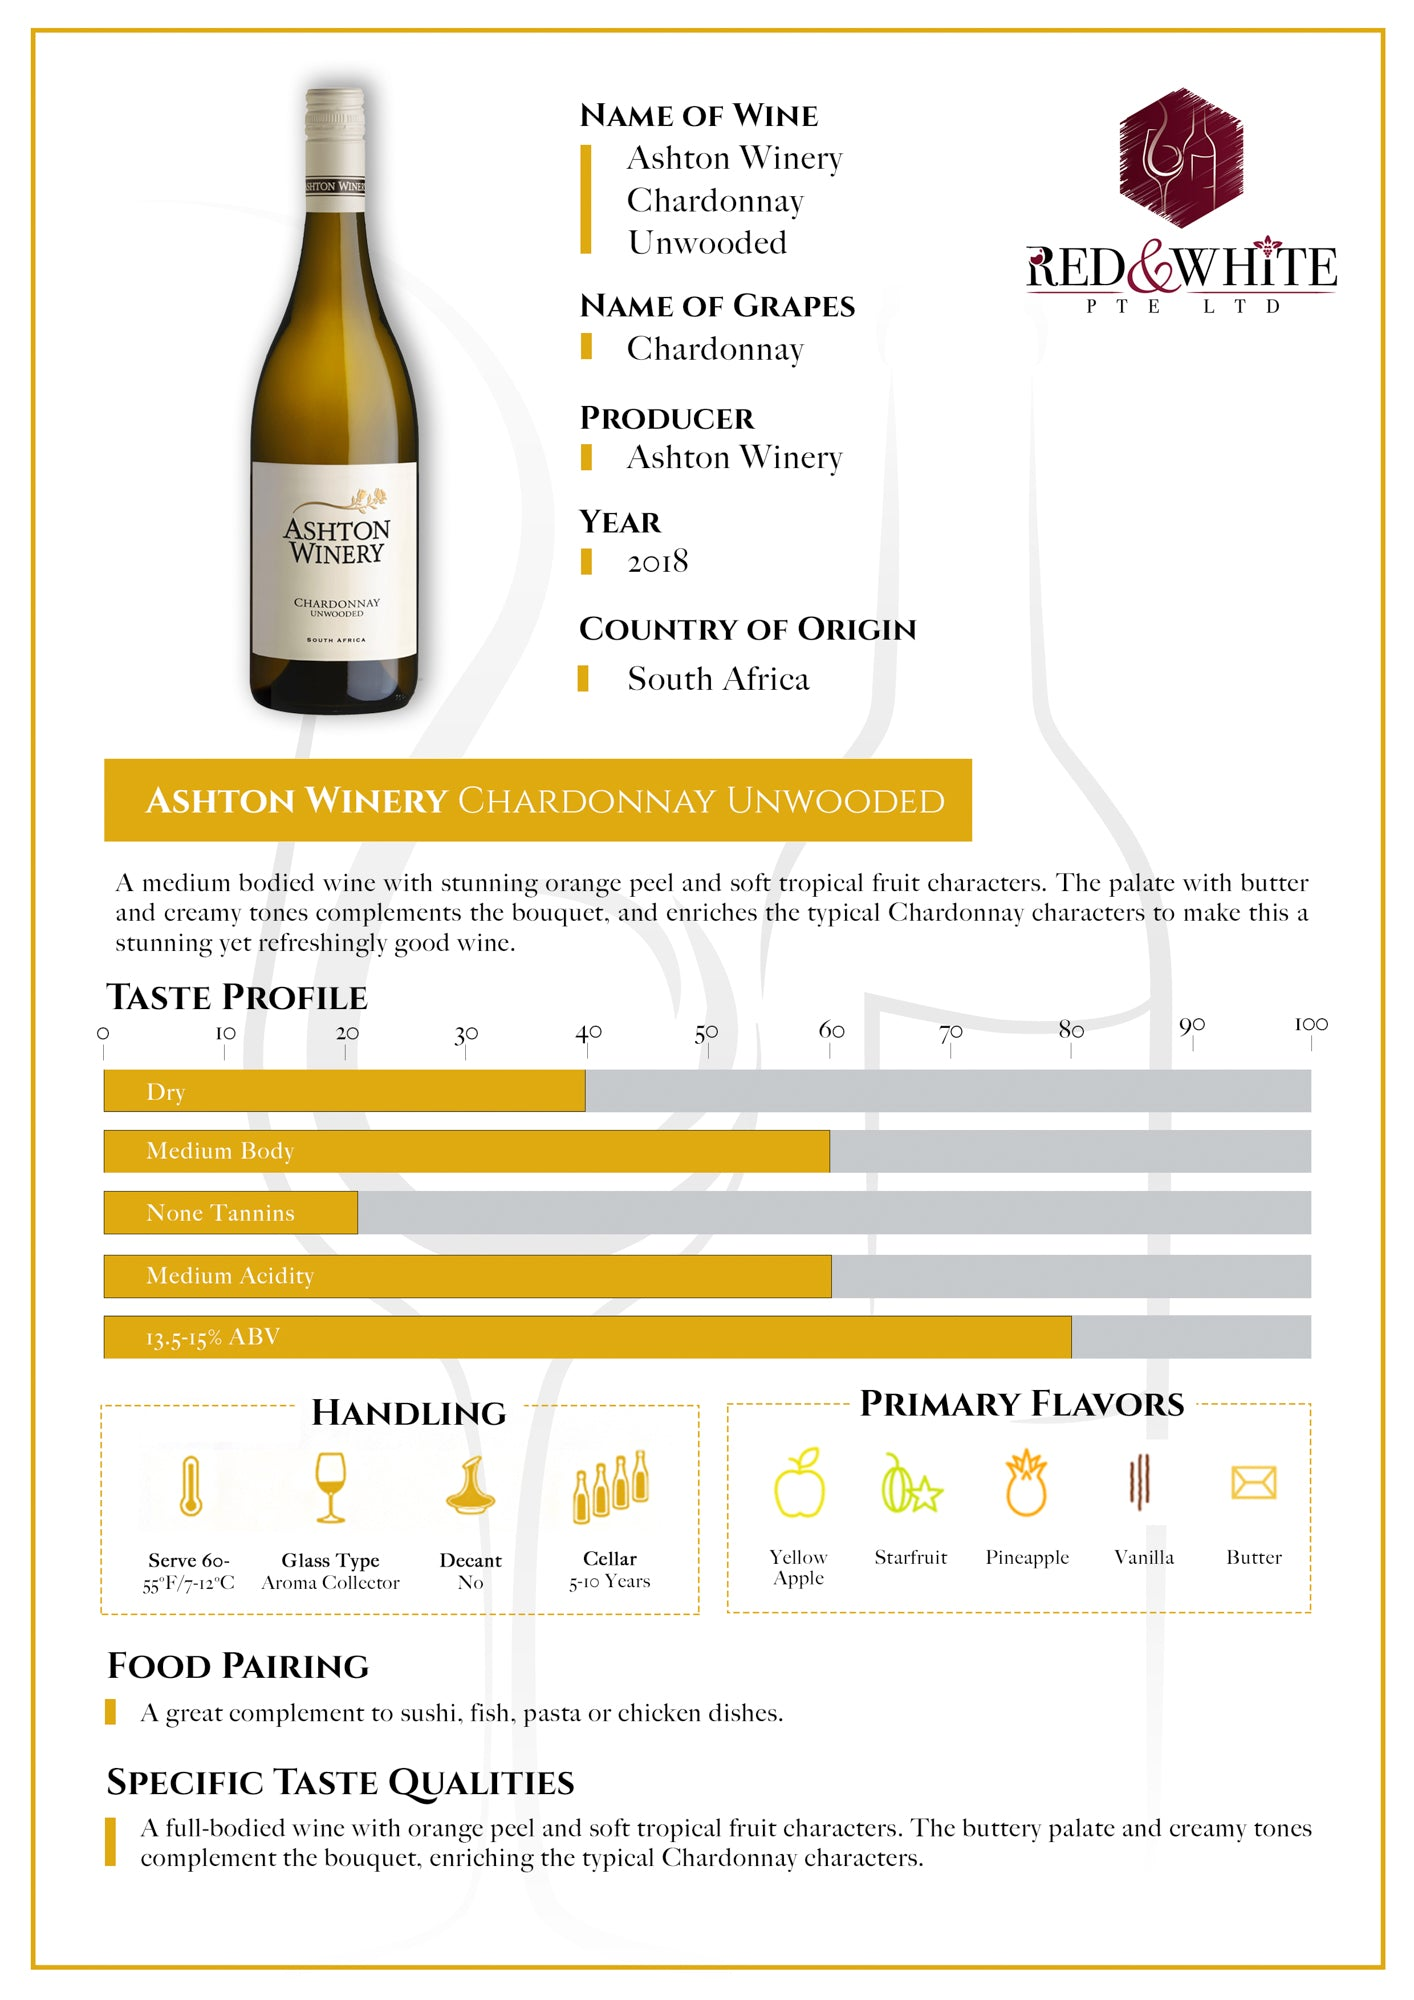 Ashton Winery Chardonnay 2019